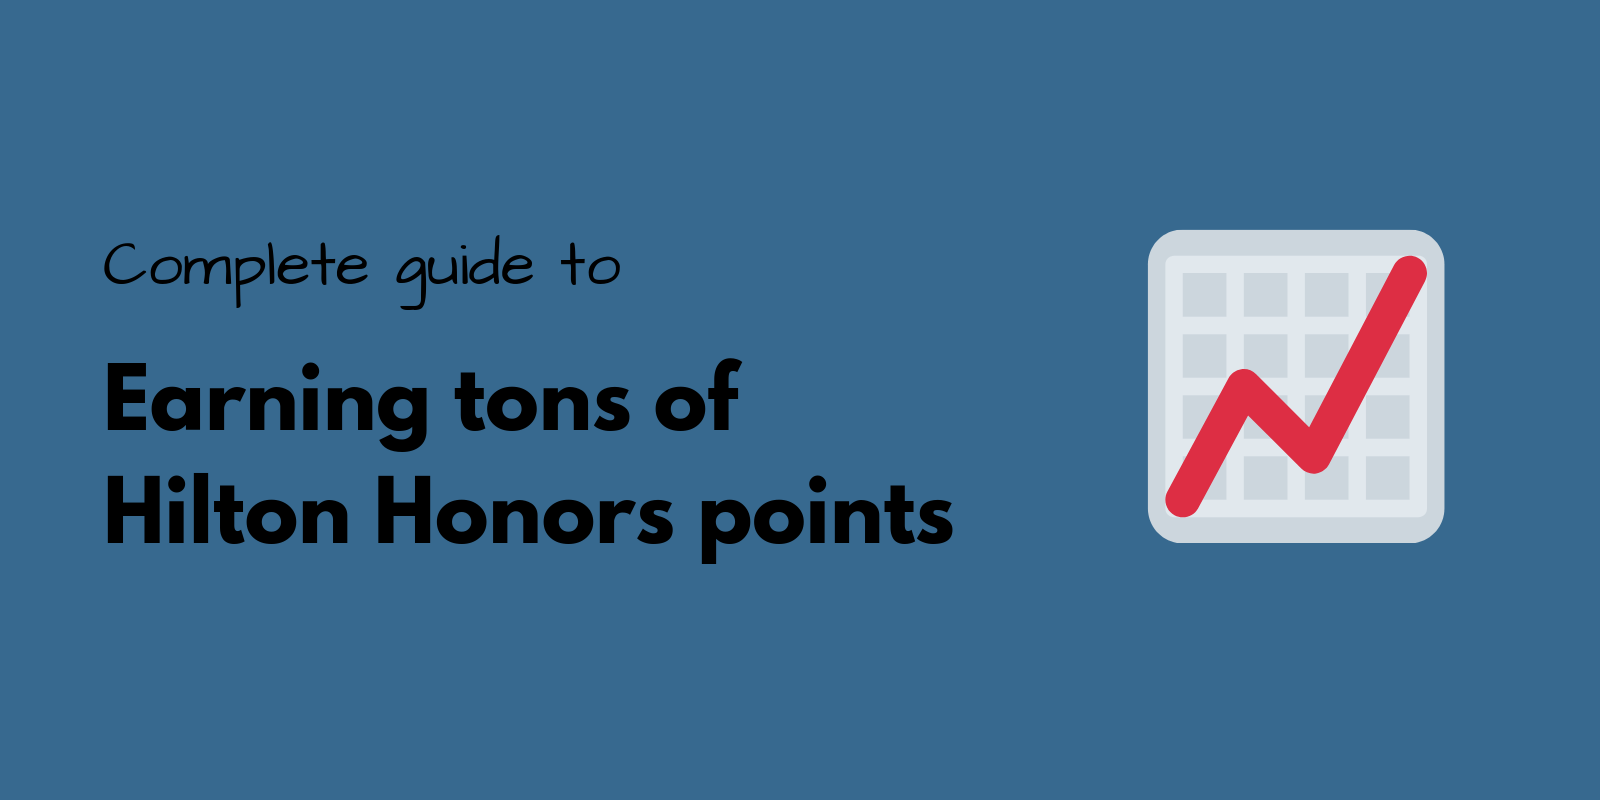 complete guide to earning hilton points